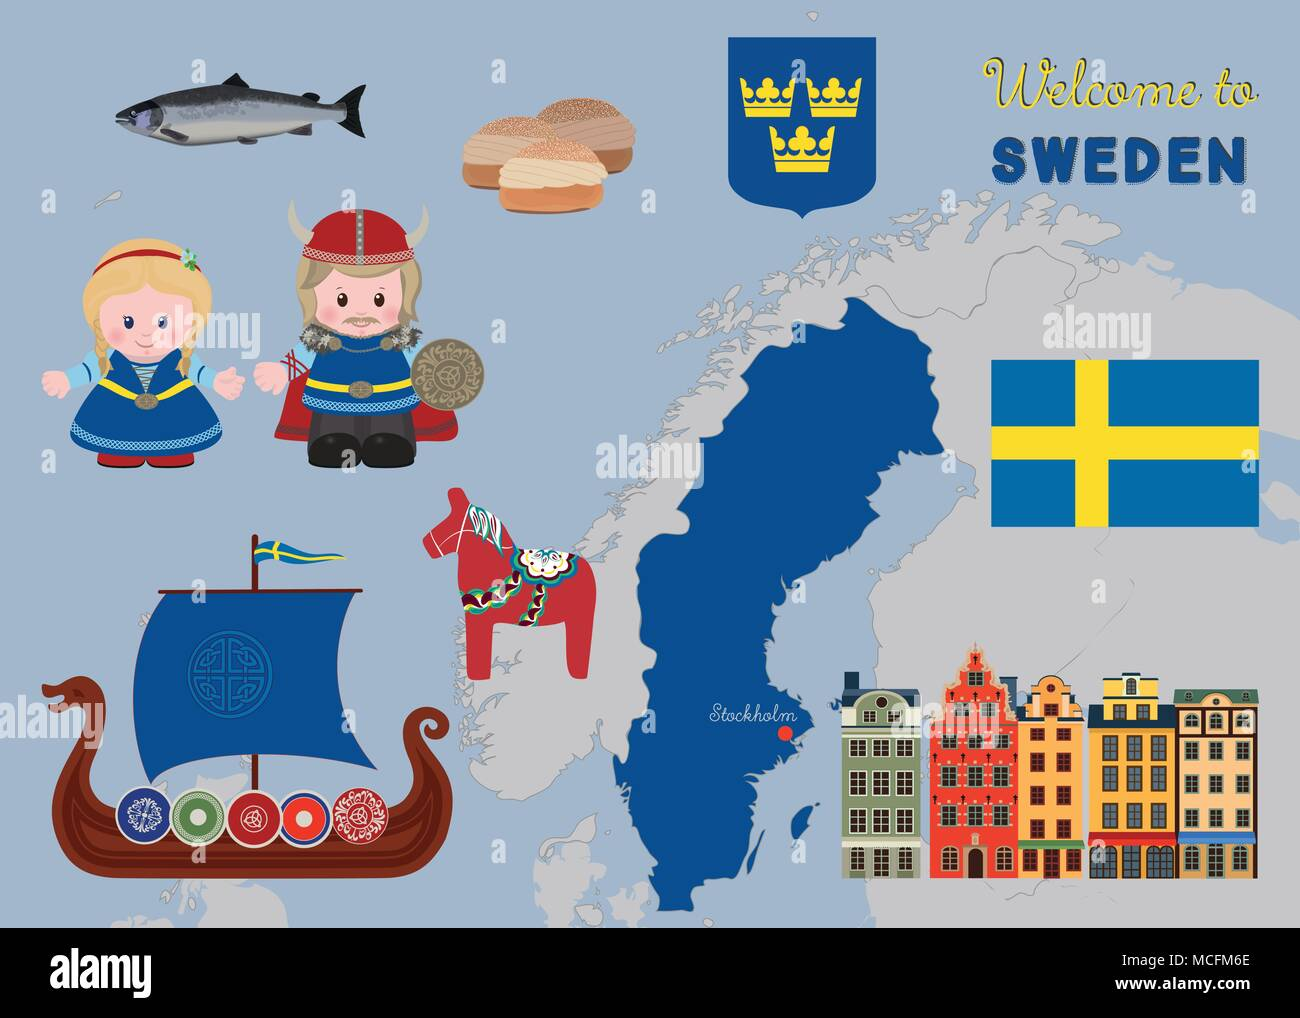 Welcome To Sweden Cartoon Characters Of Vikings In Ancient